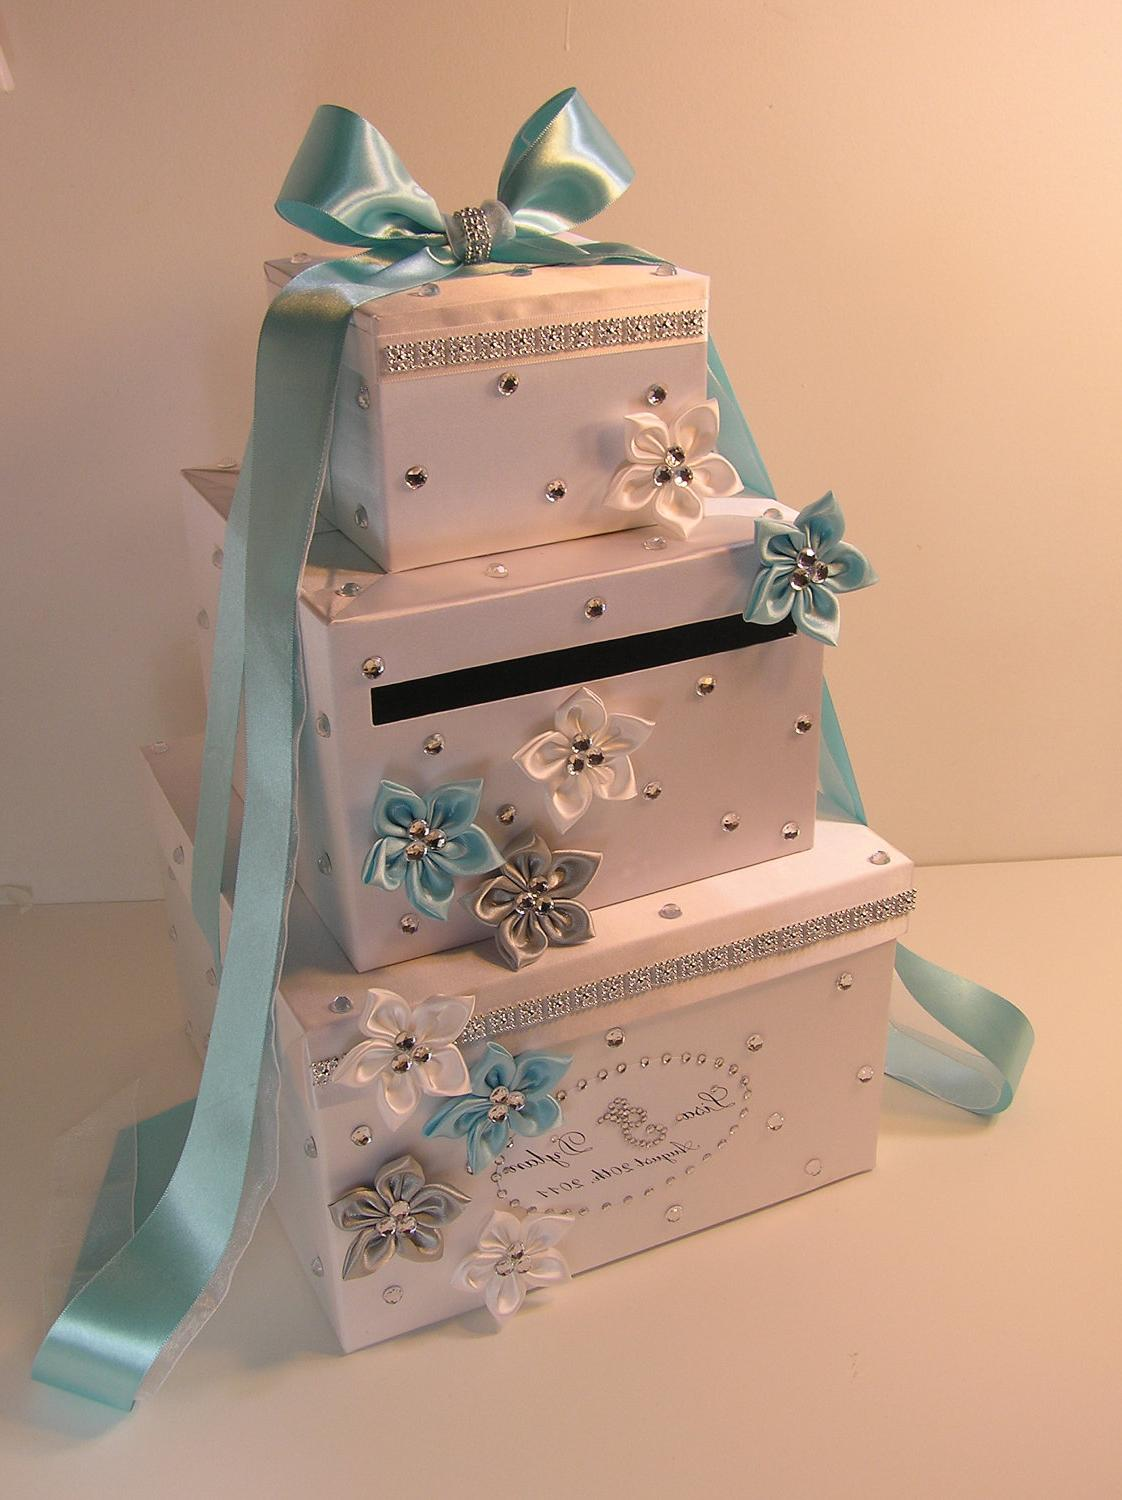 Wedding Gift Box Ideas : White_Wedding_Card_Box_Gift_Card_Box_Money_Card_Box_HolderCustomize ...